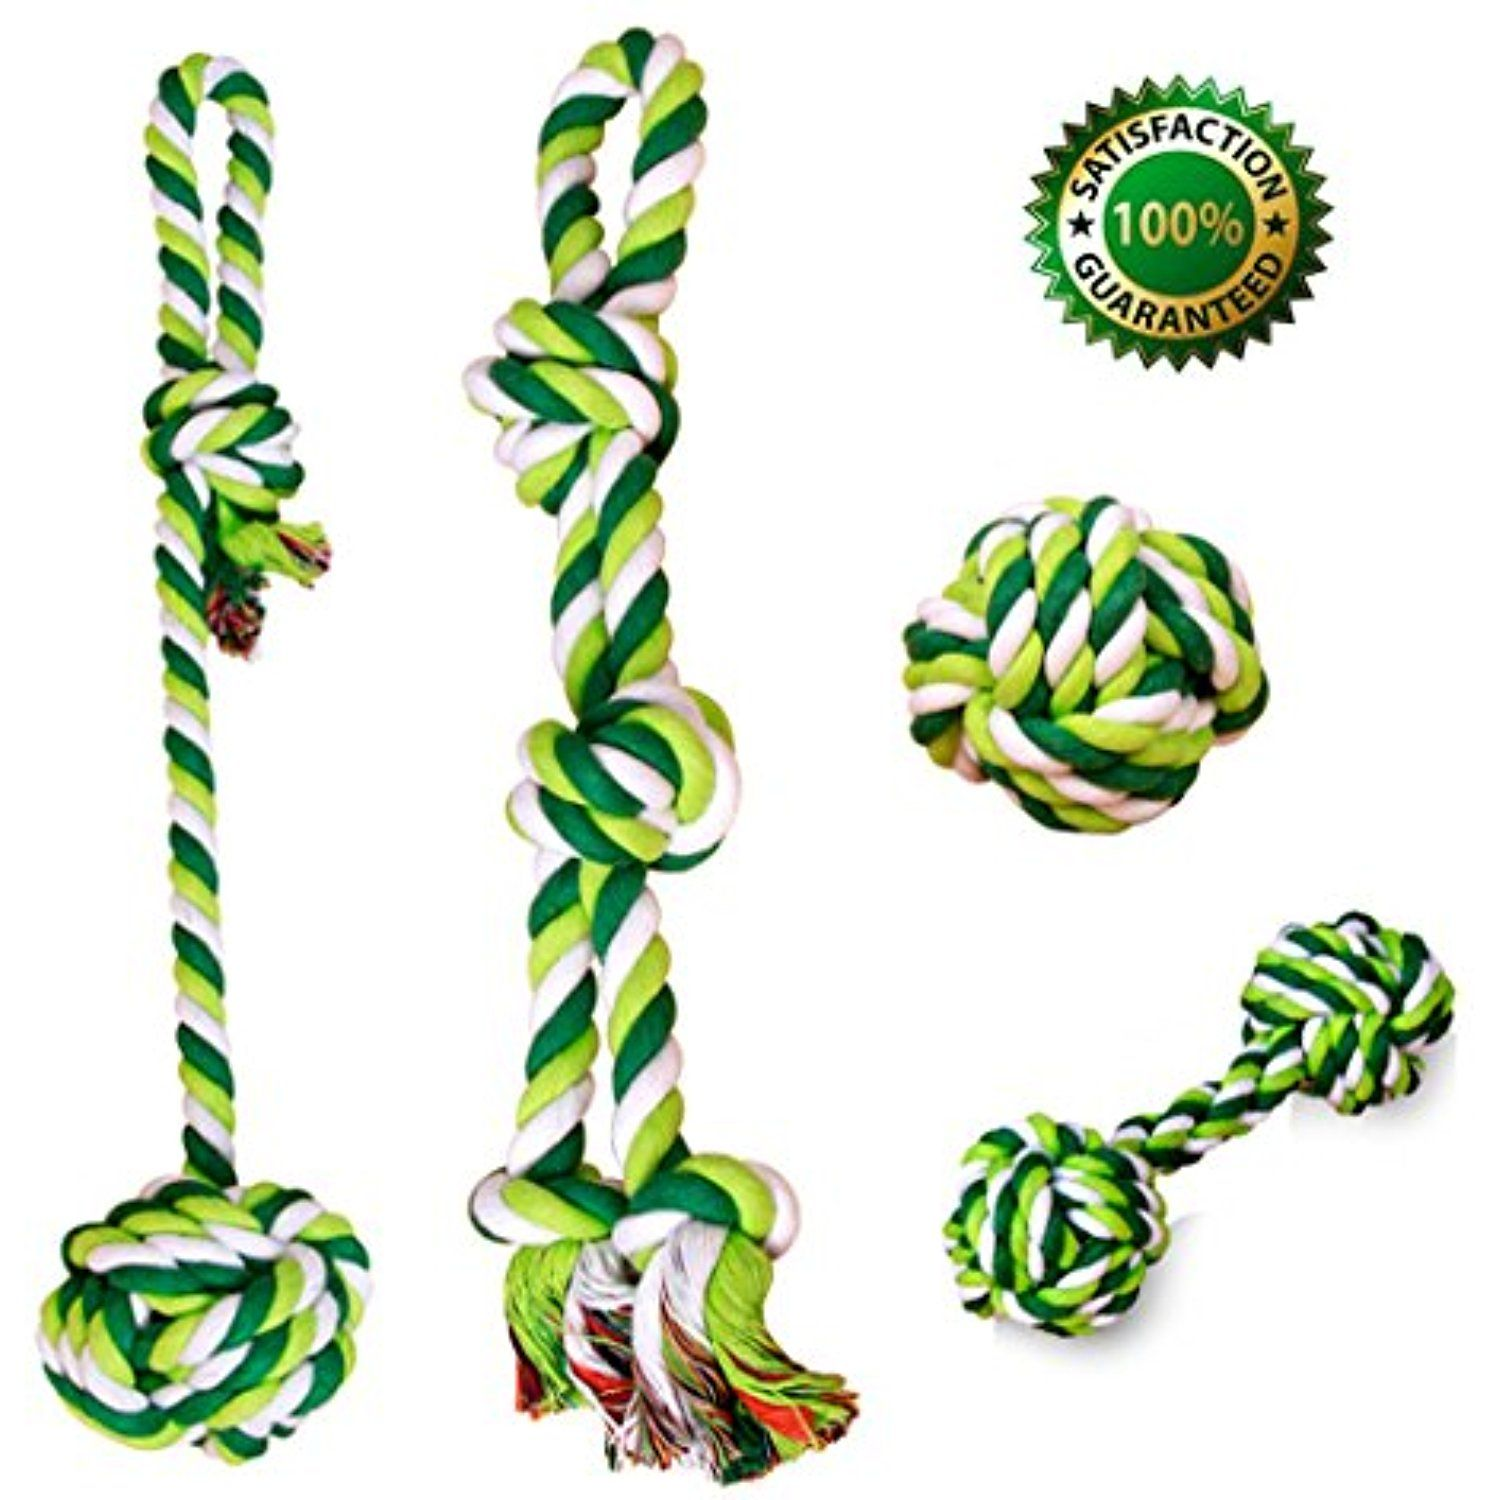 Dog Rope Chew Toys 4 Different Durable Ineractive Toys With Cotton